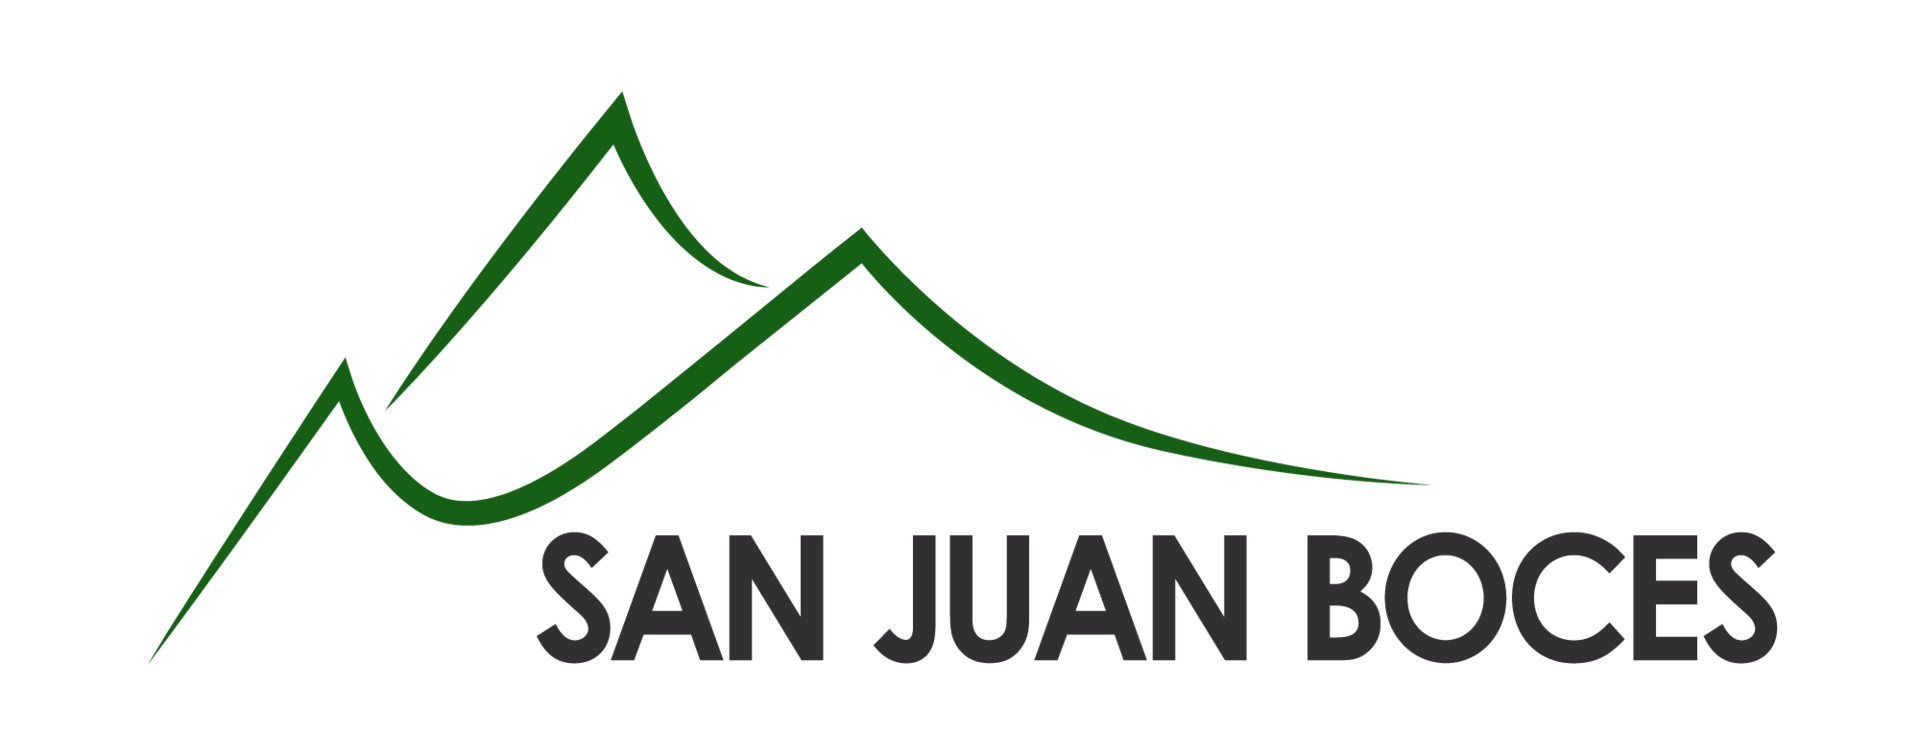 Two green mountains over the text San Juan BOCES